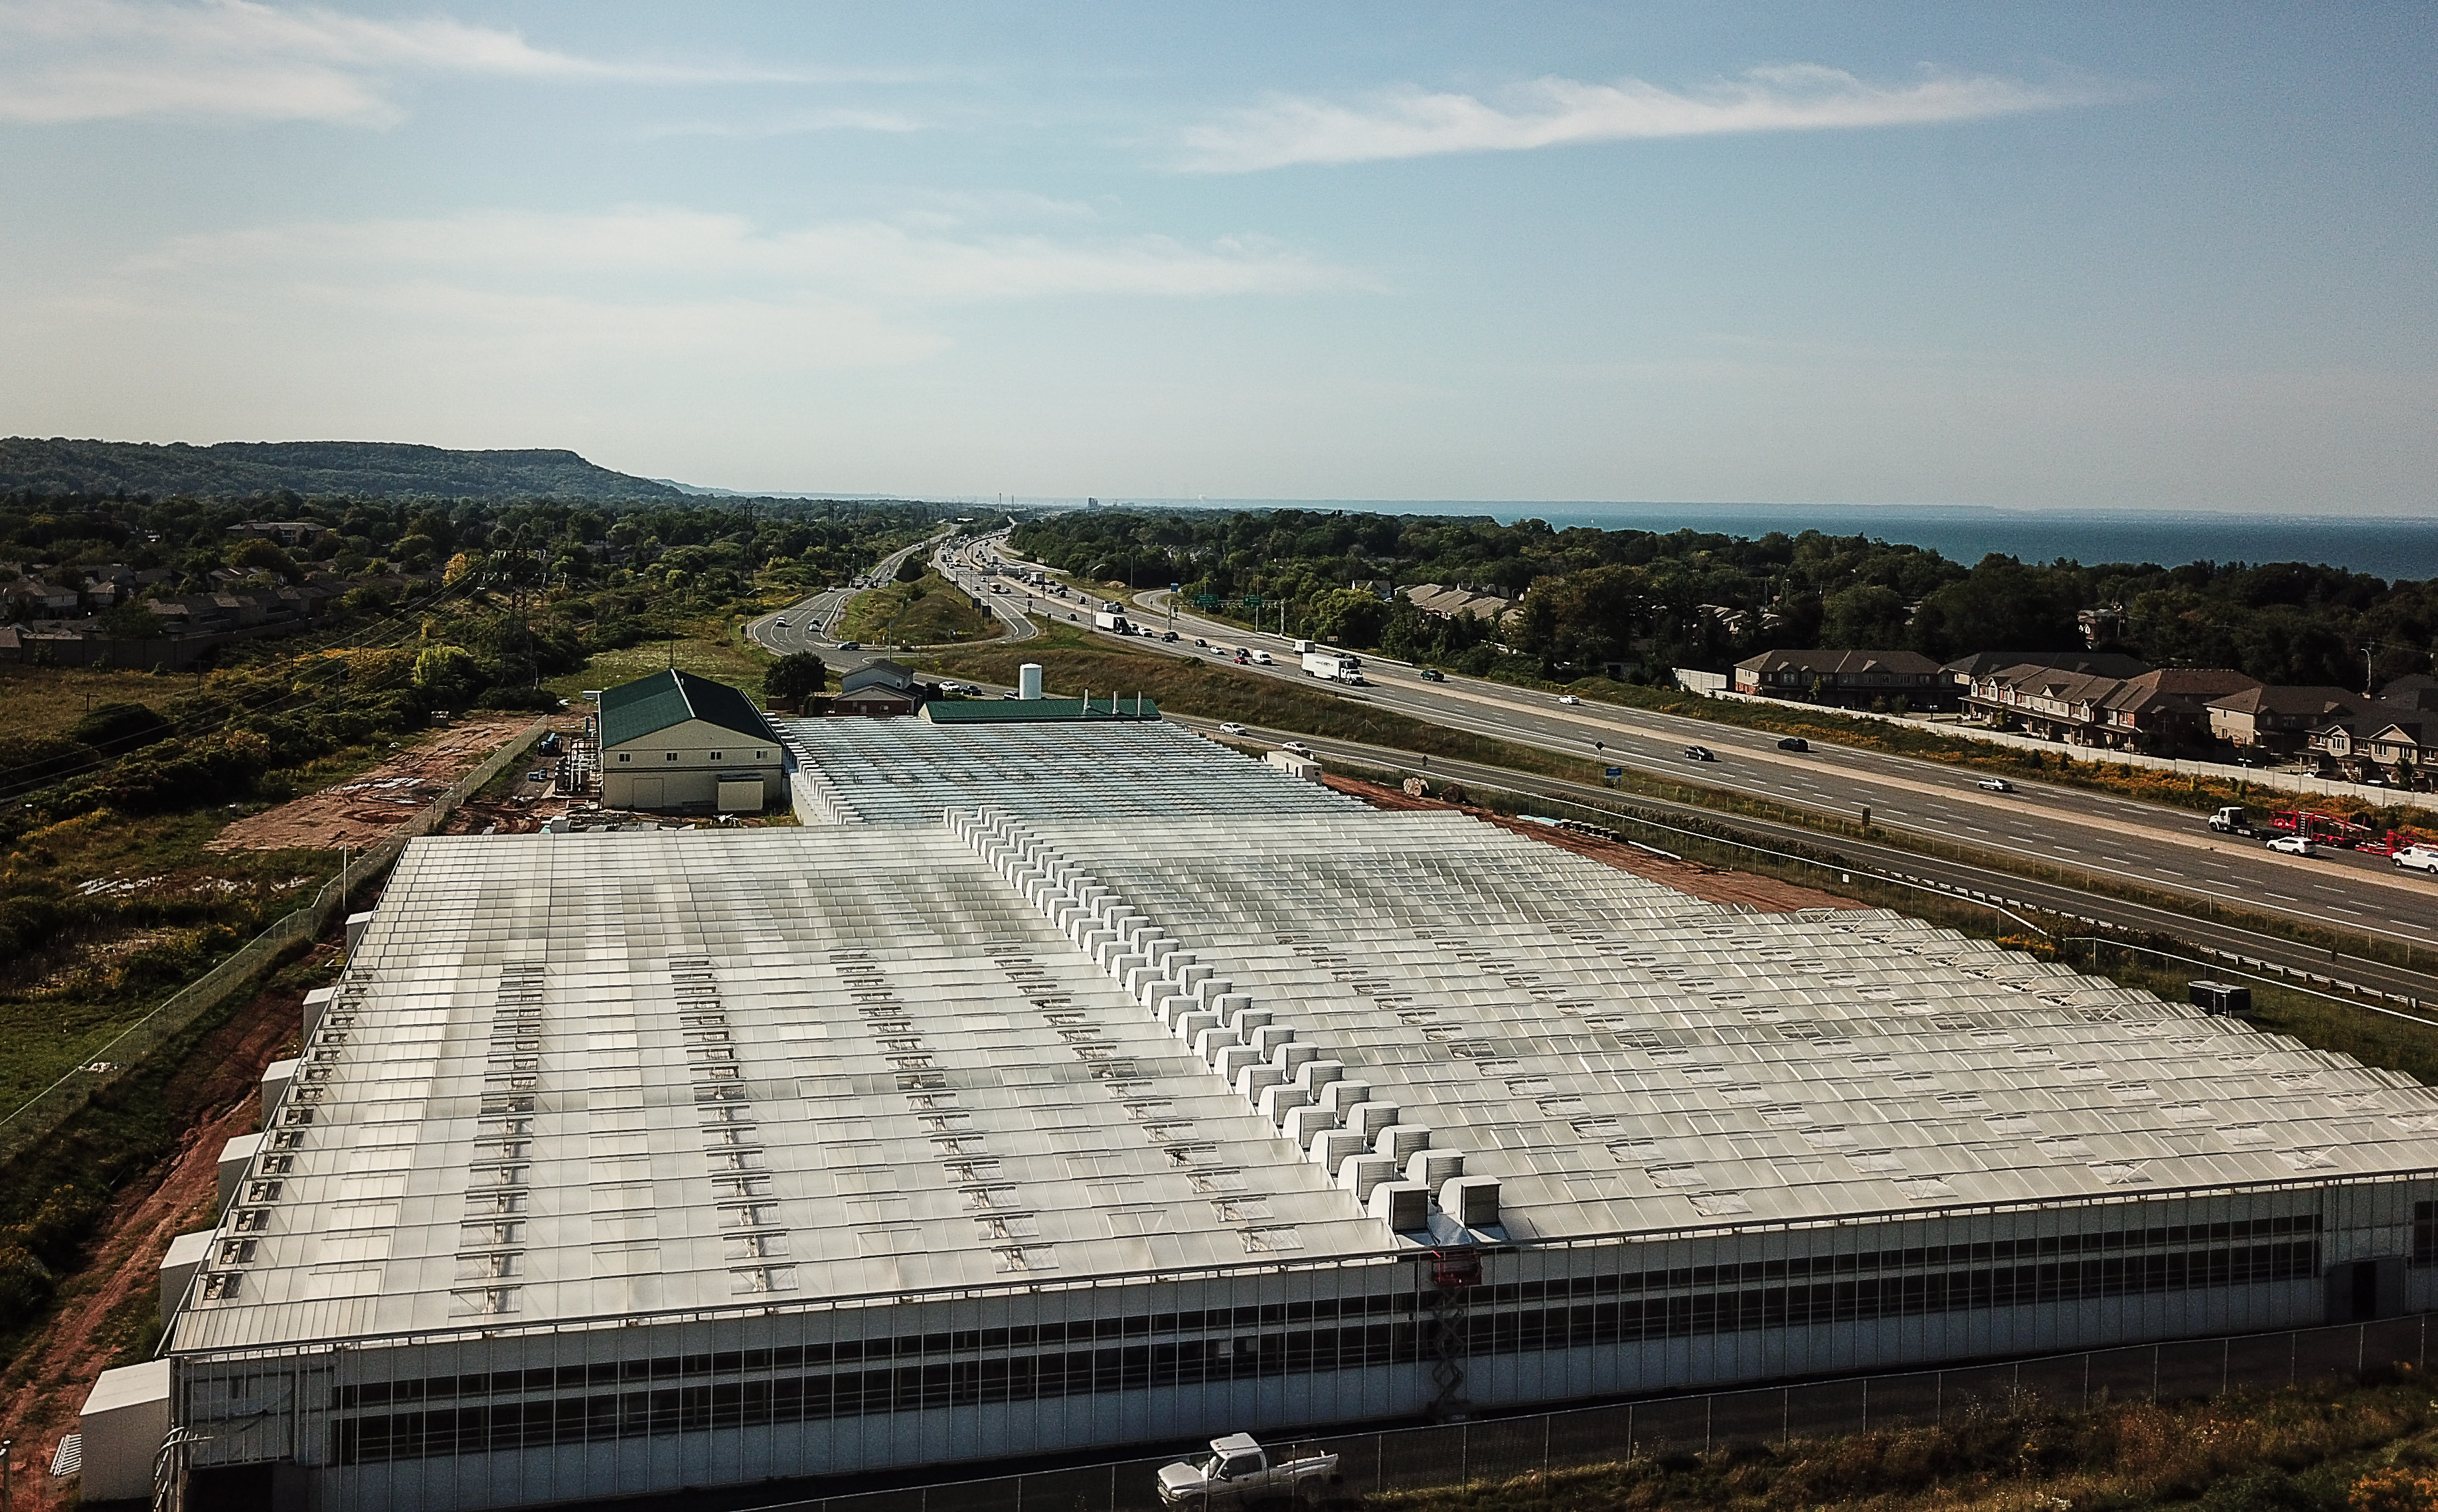 Aleafia Health to Commence Cultivation in Entire 160,000 sq. ft. Niagara Greenhouse Facility